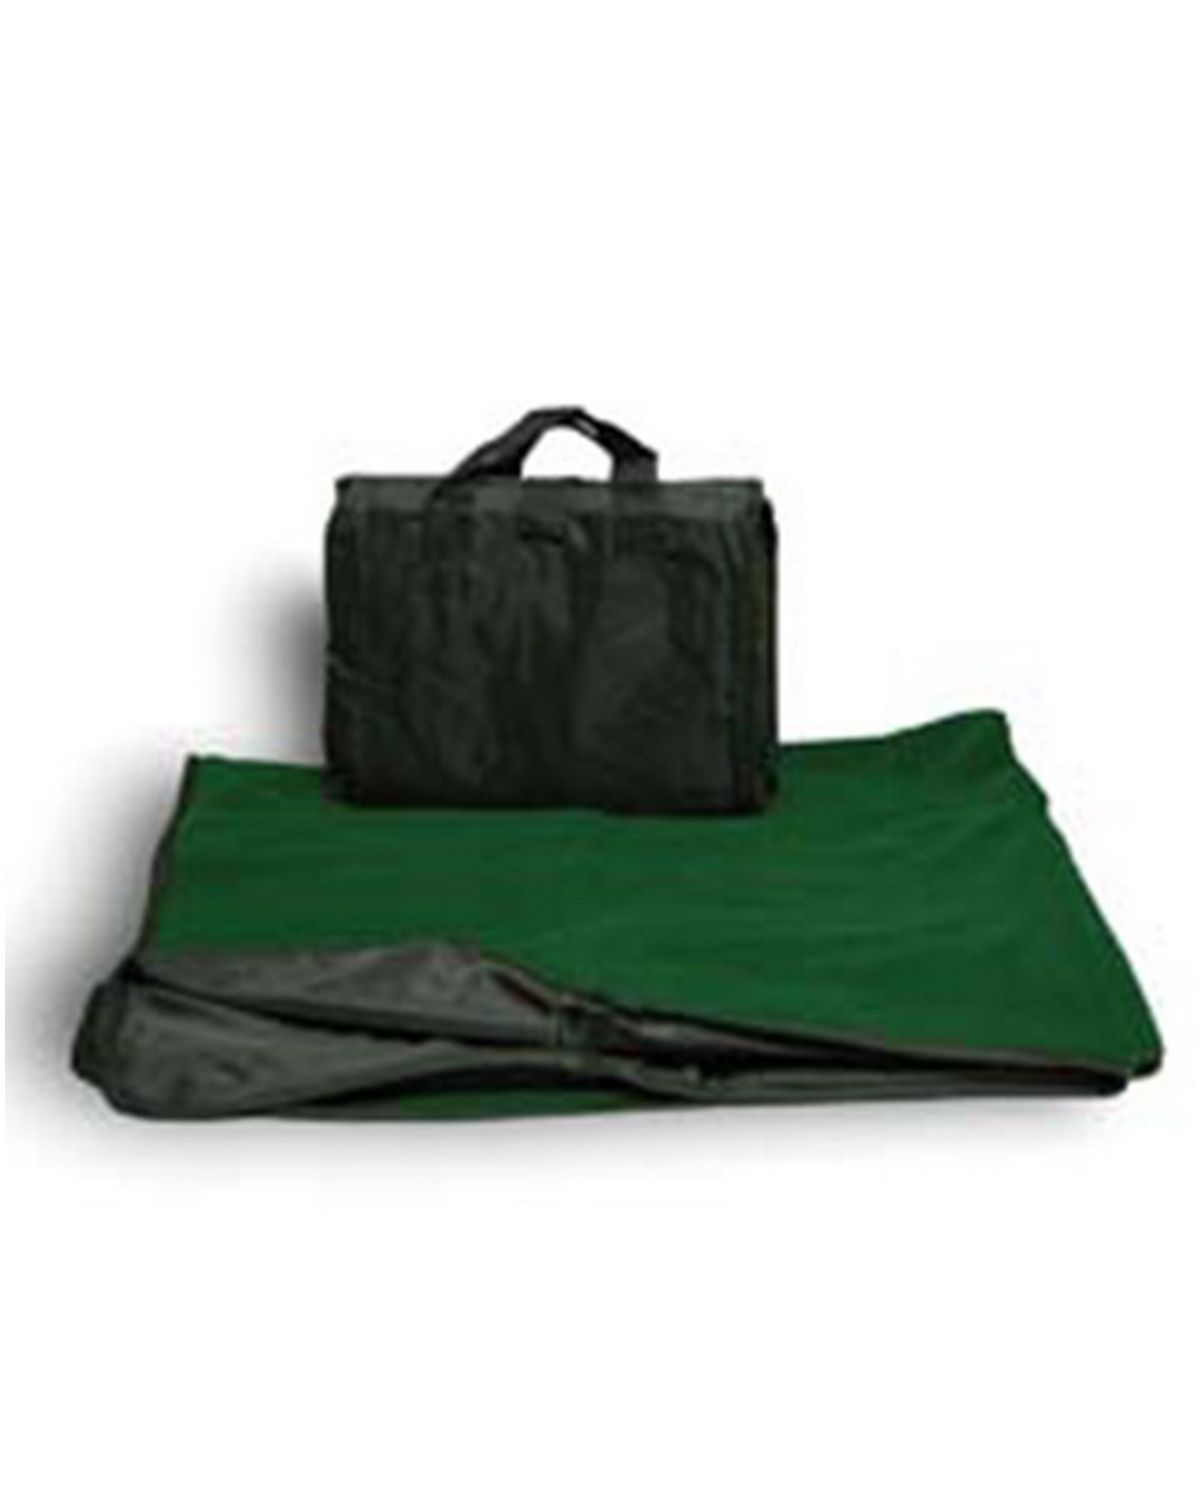 Alpine Fleece LB8701 Fleece/Nylon Picnic Blanket